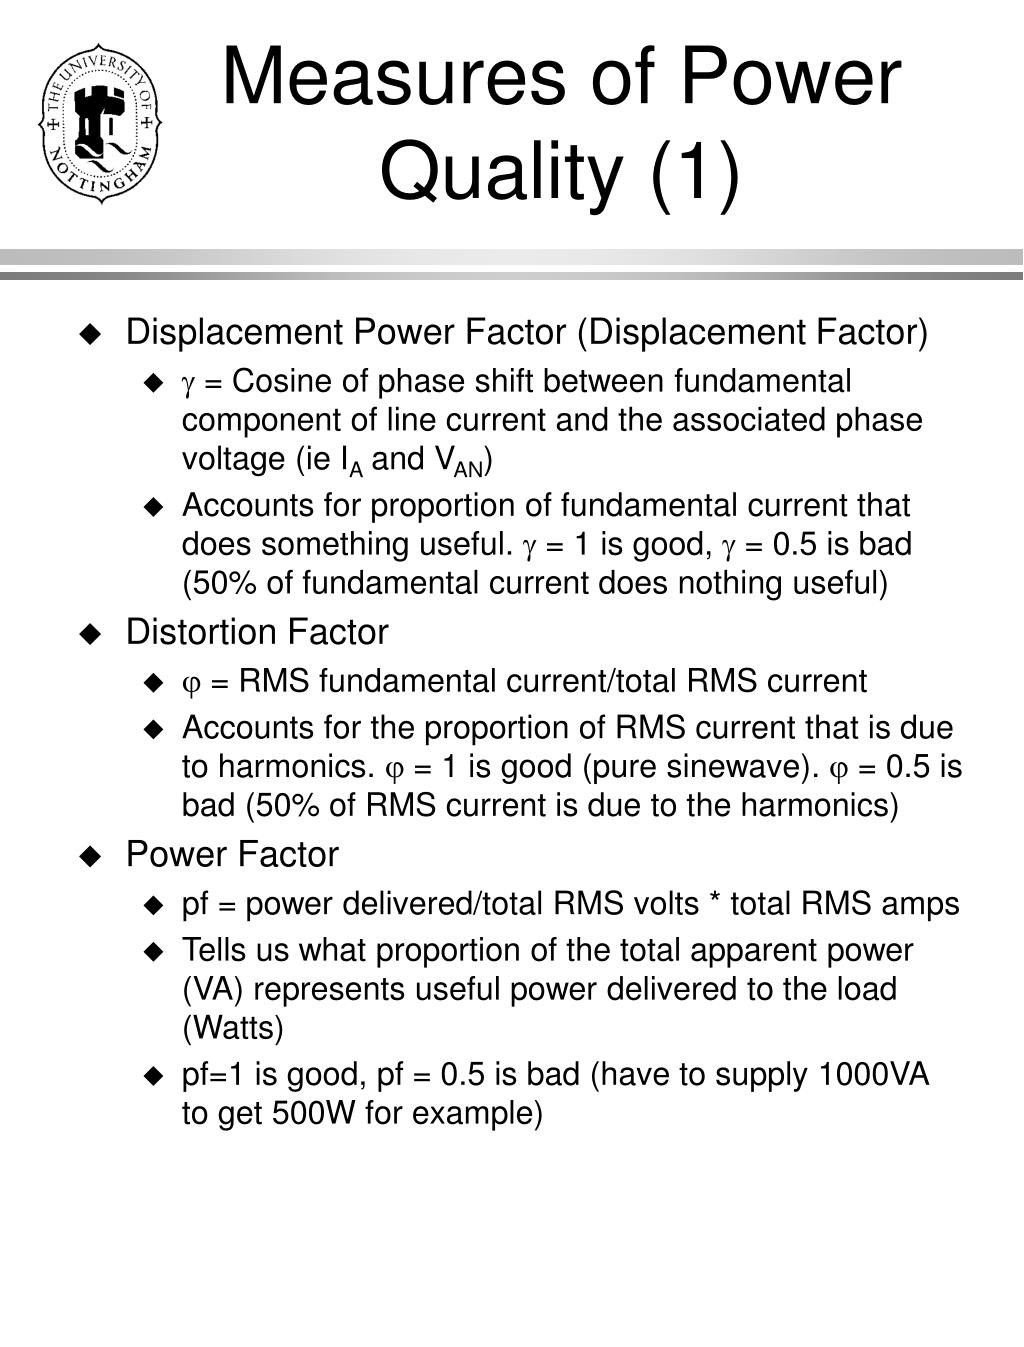 Measures of Power Quality (1)